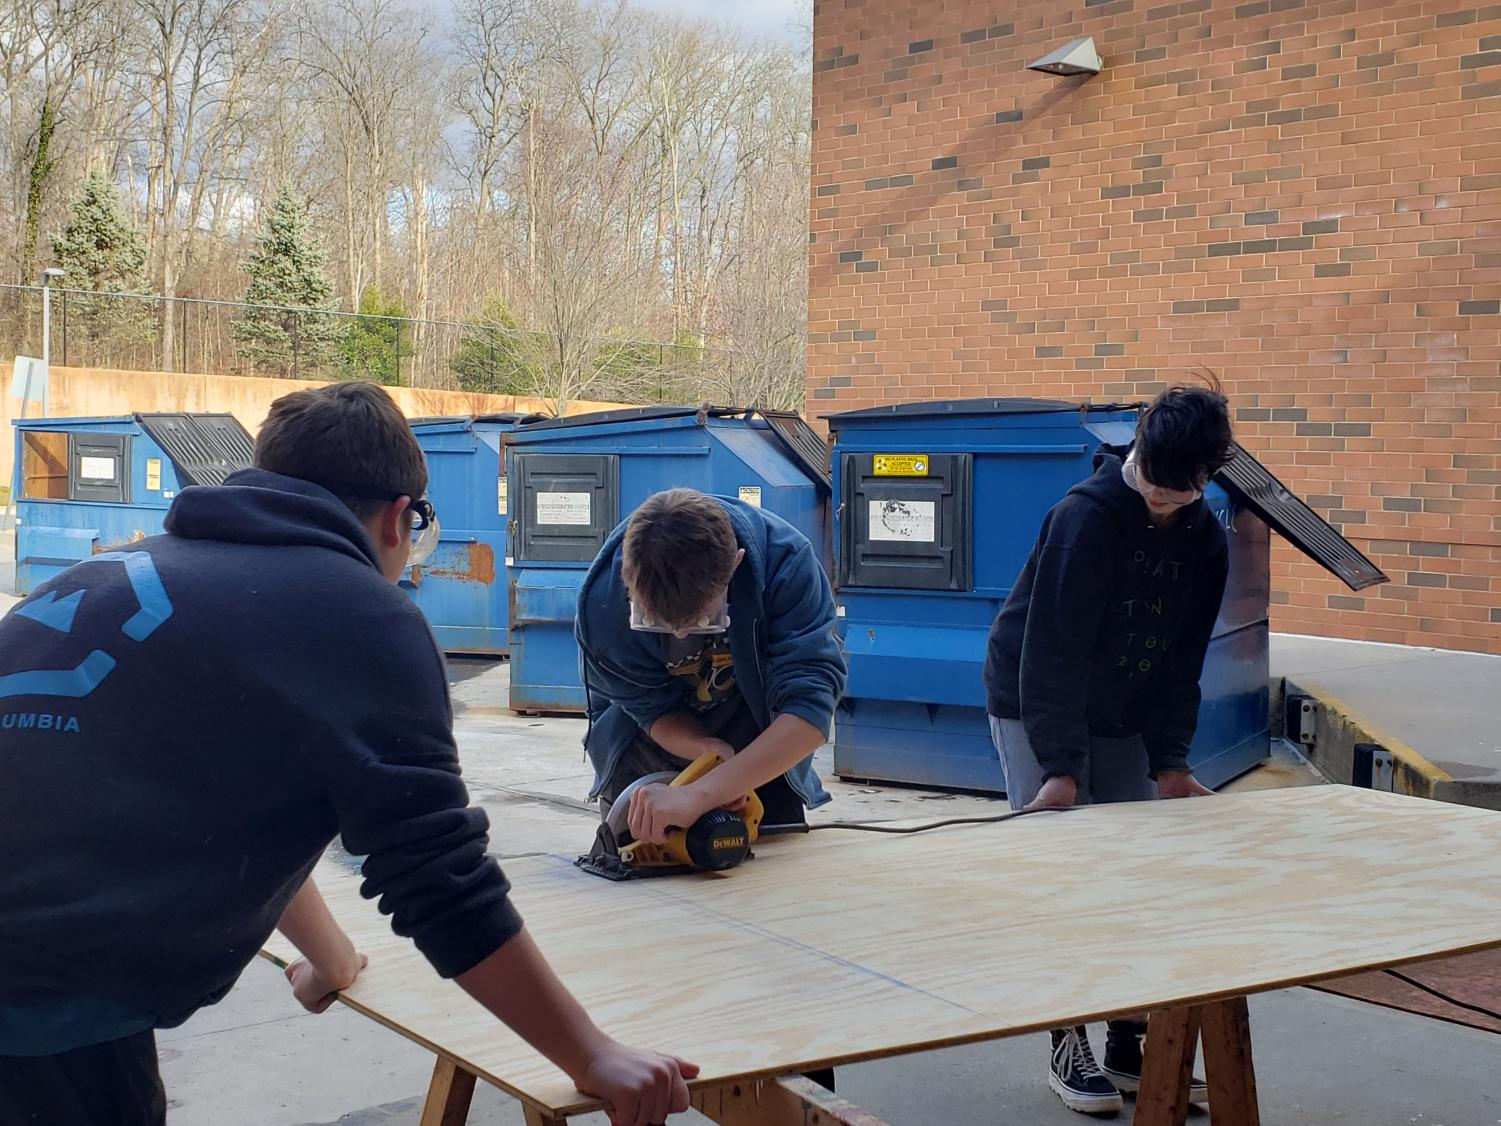 Students work together to cut a piece of wood that will be used to make a table.